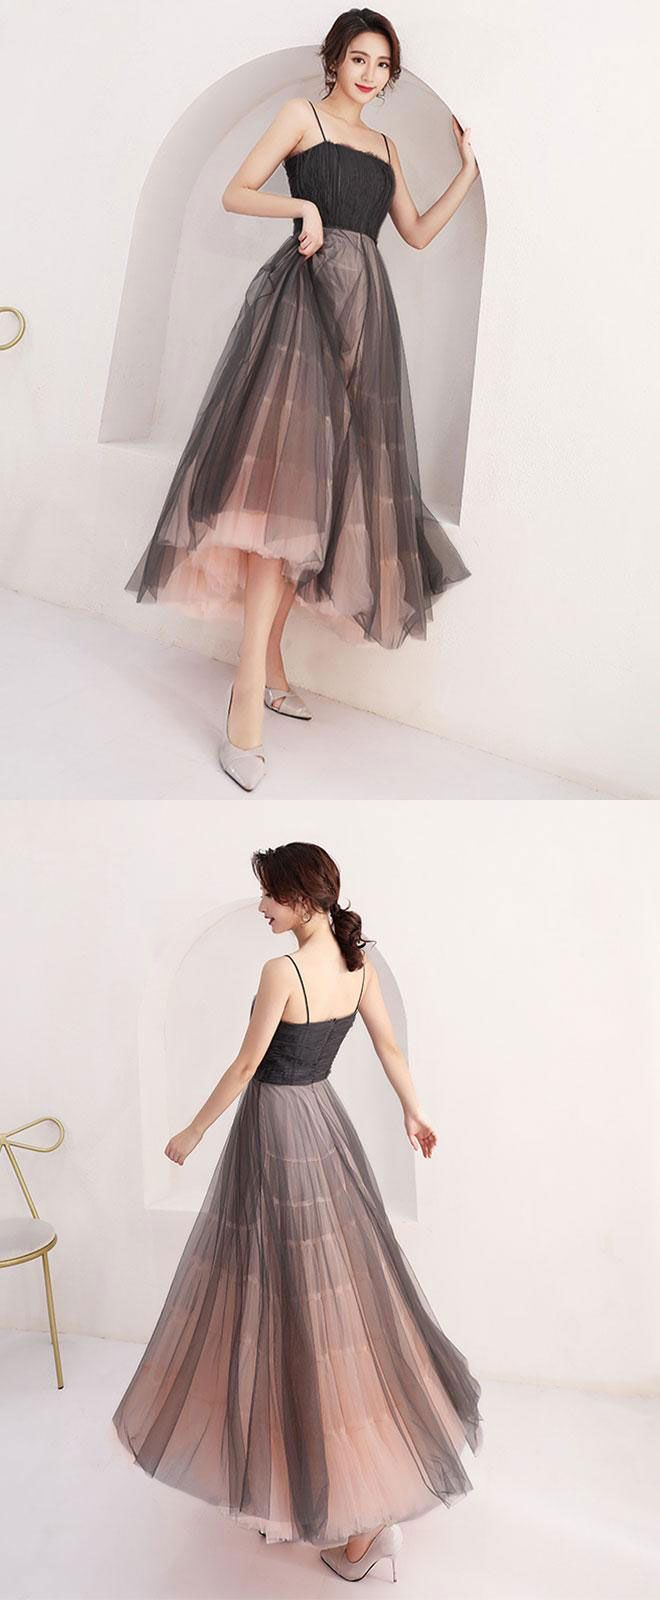 High quality black tulle short prom dress homecoming dress in